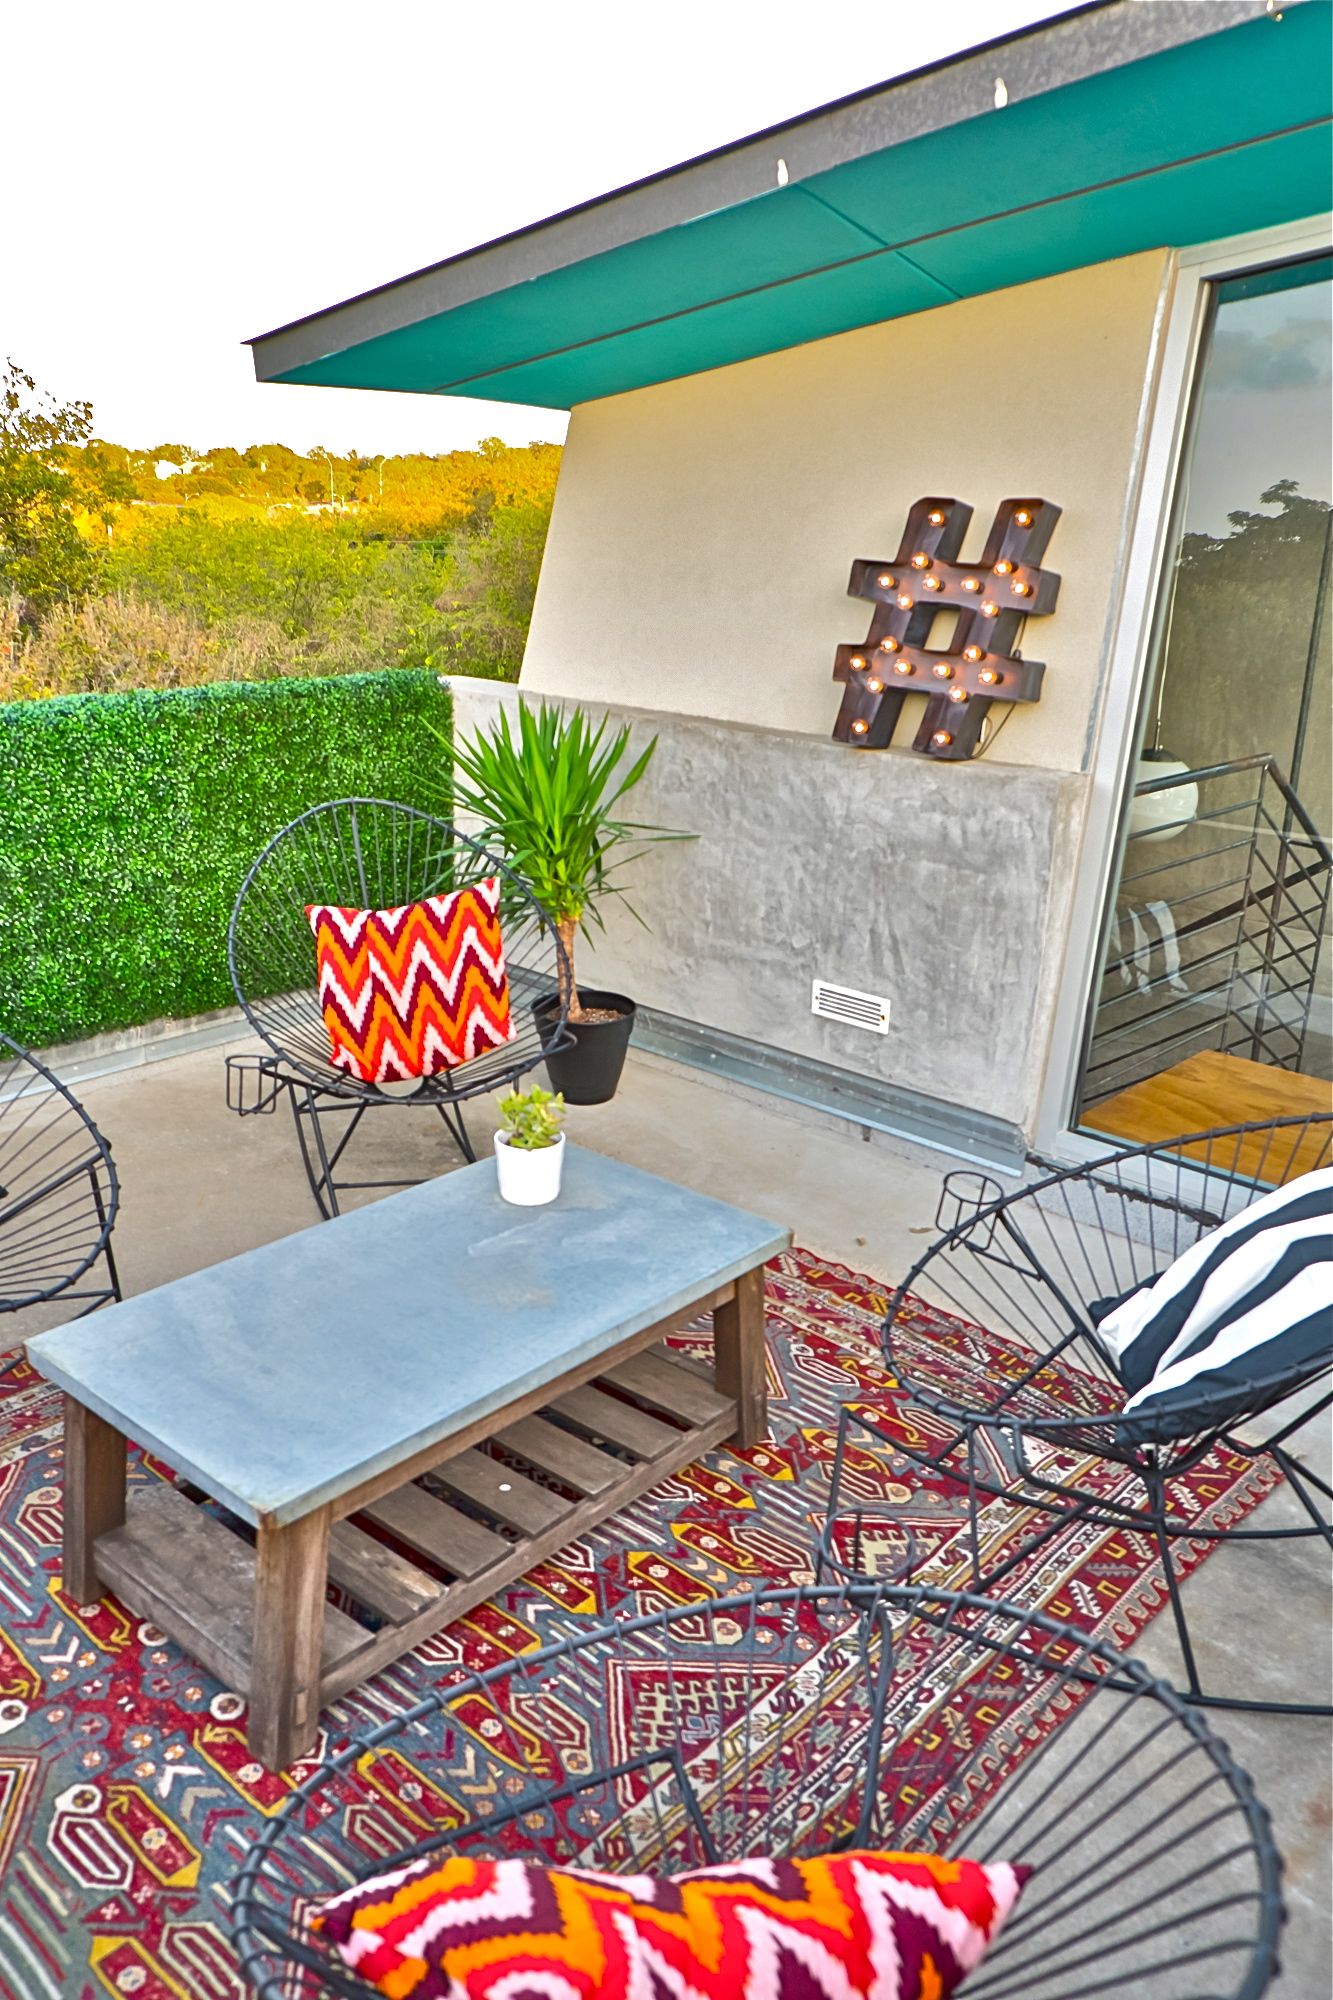 Acapulco chair on patio - Hashtag Sign